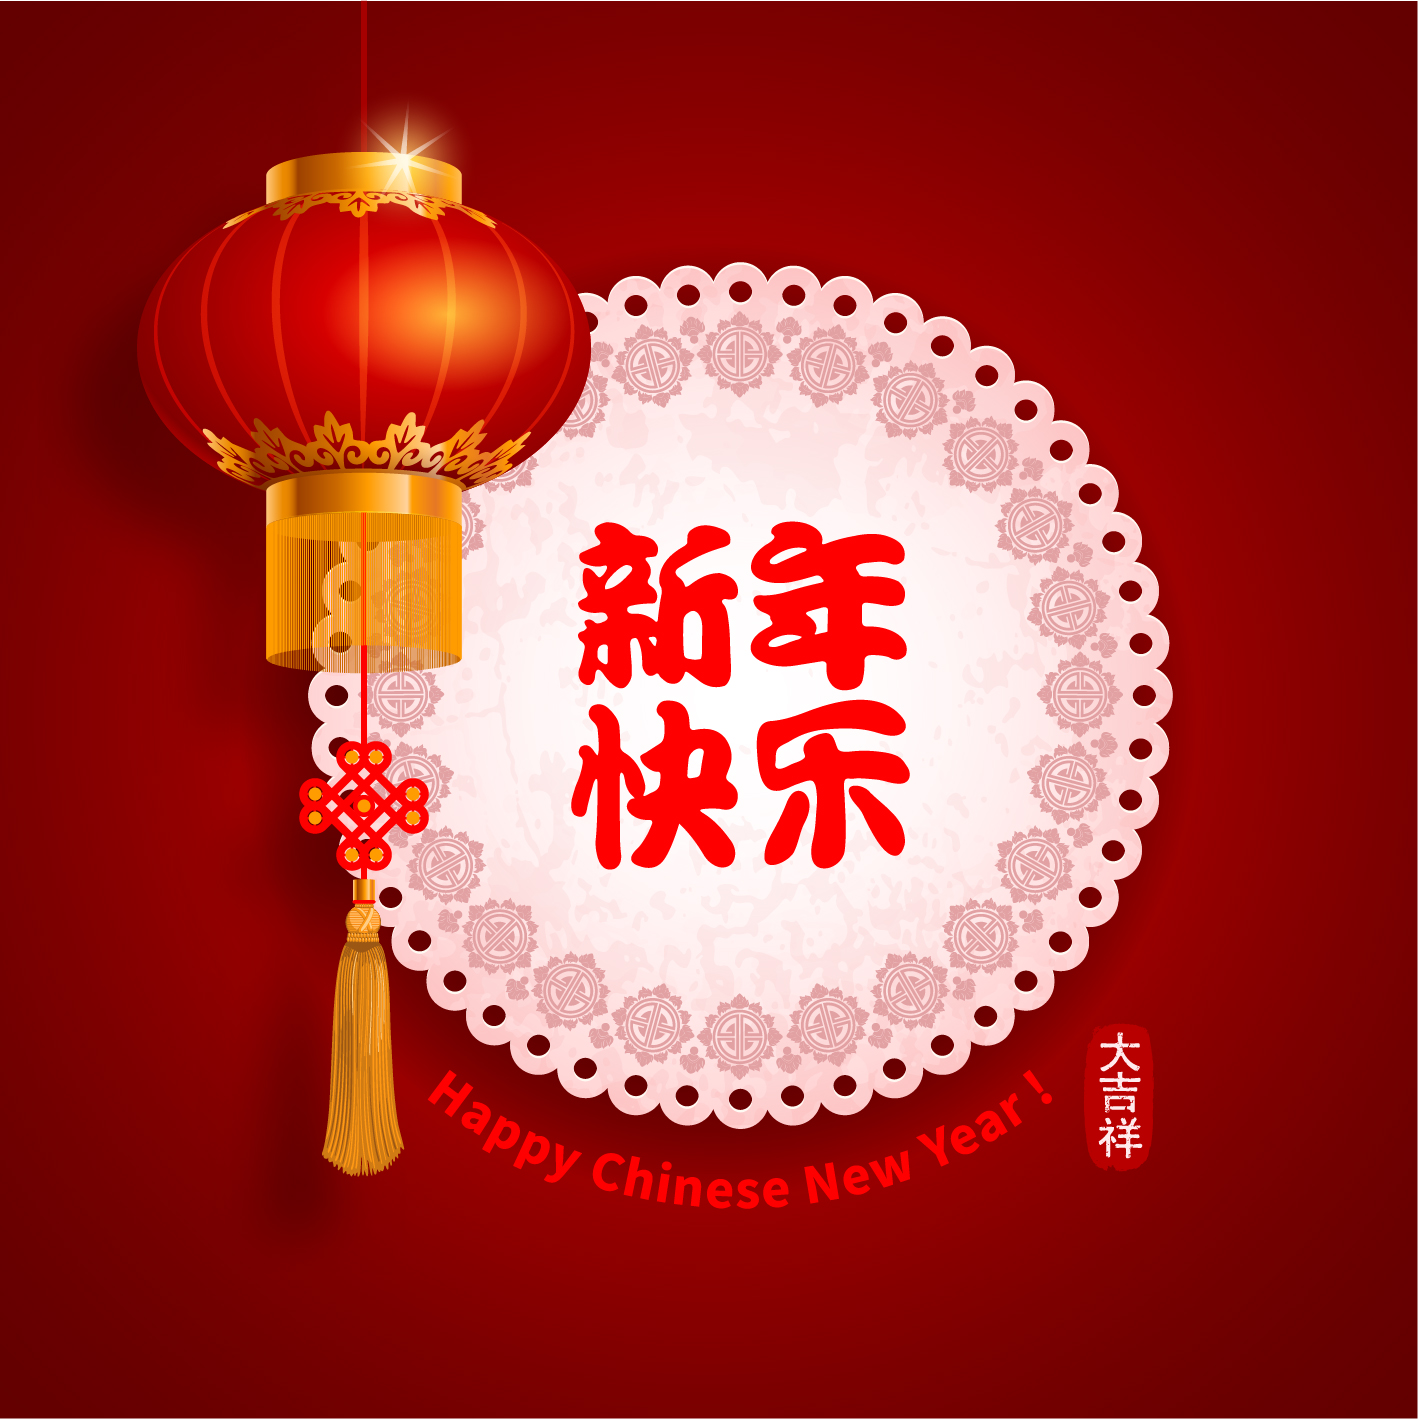 chinese new year background with red lantern vector 01 - Chinese New Year Lantern